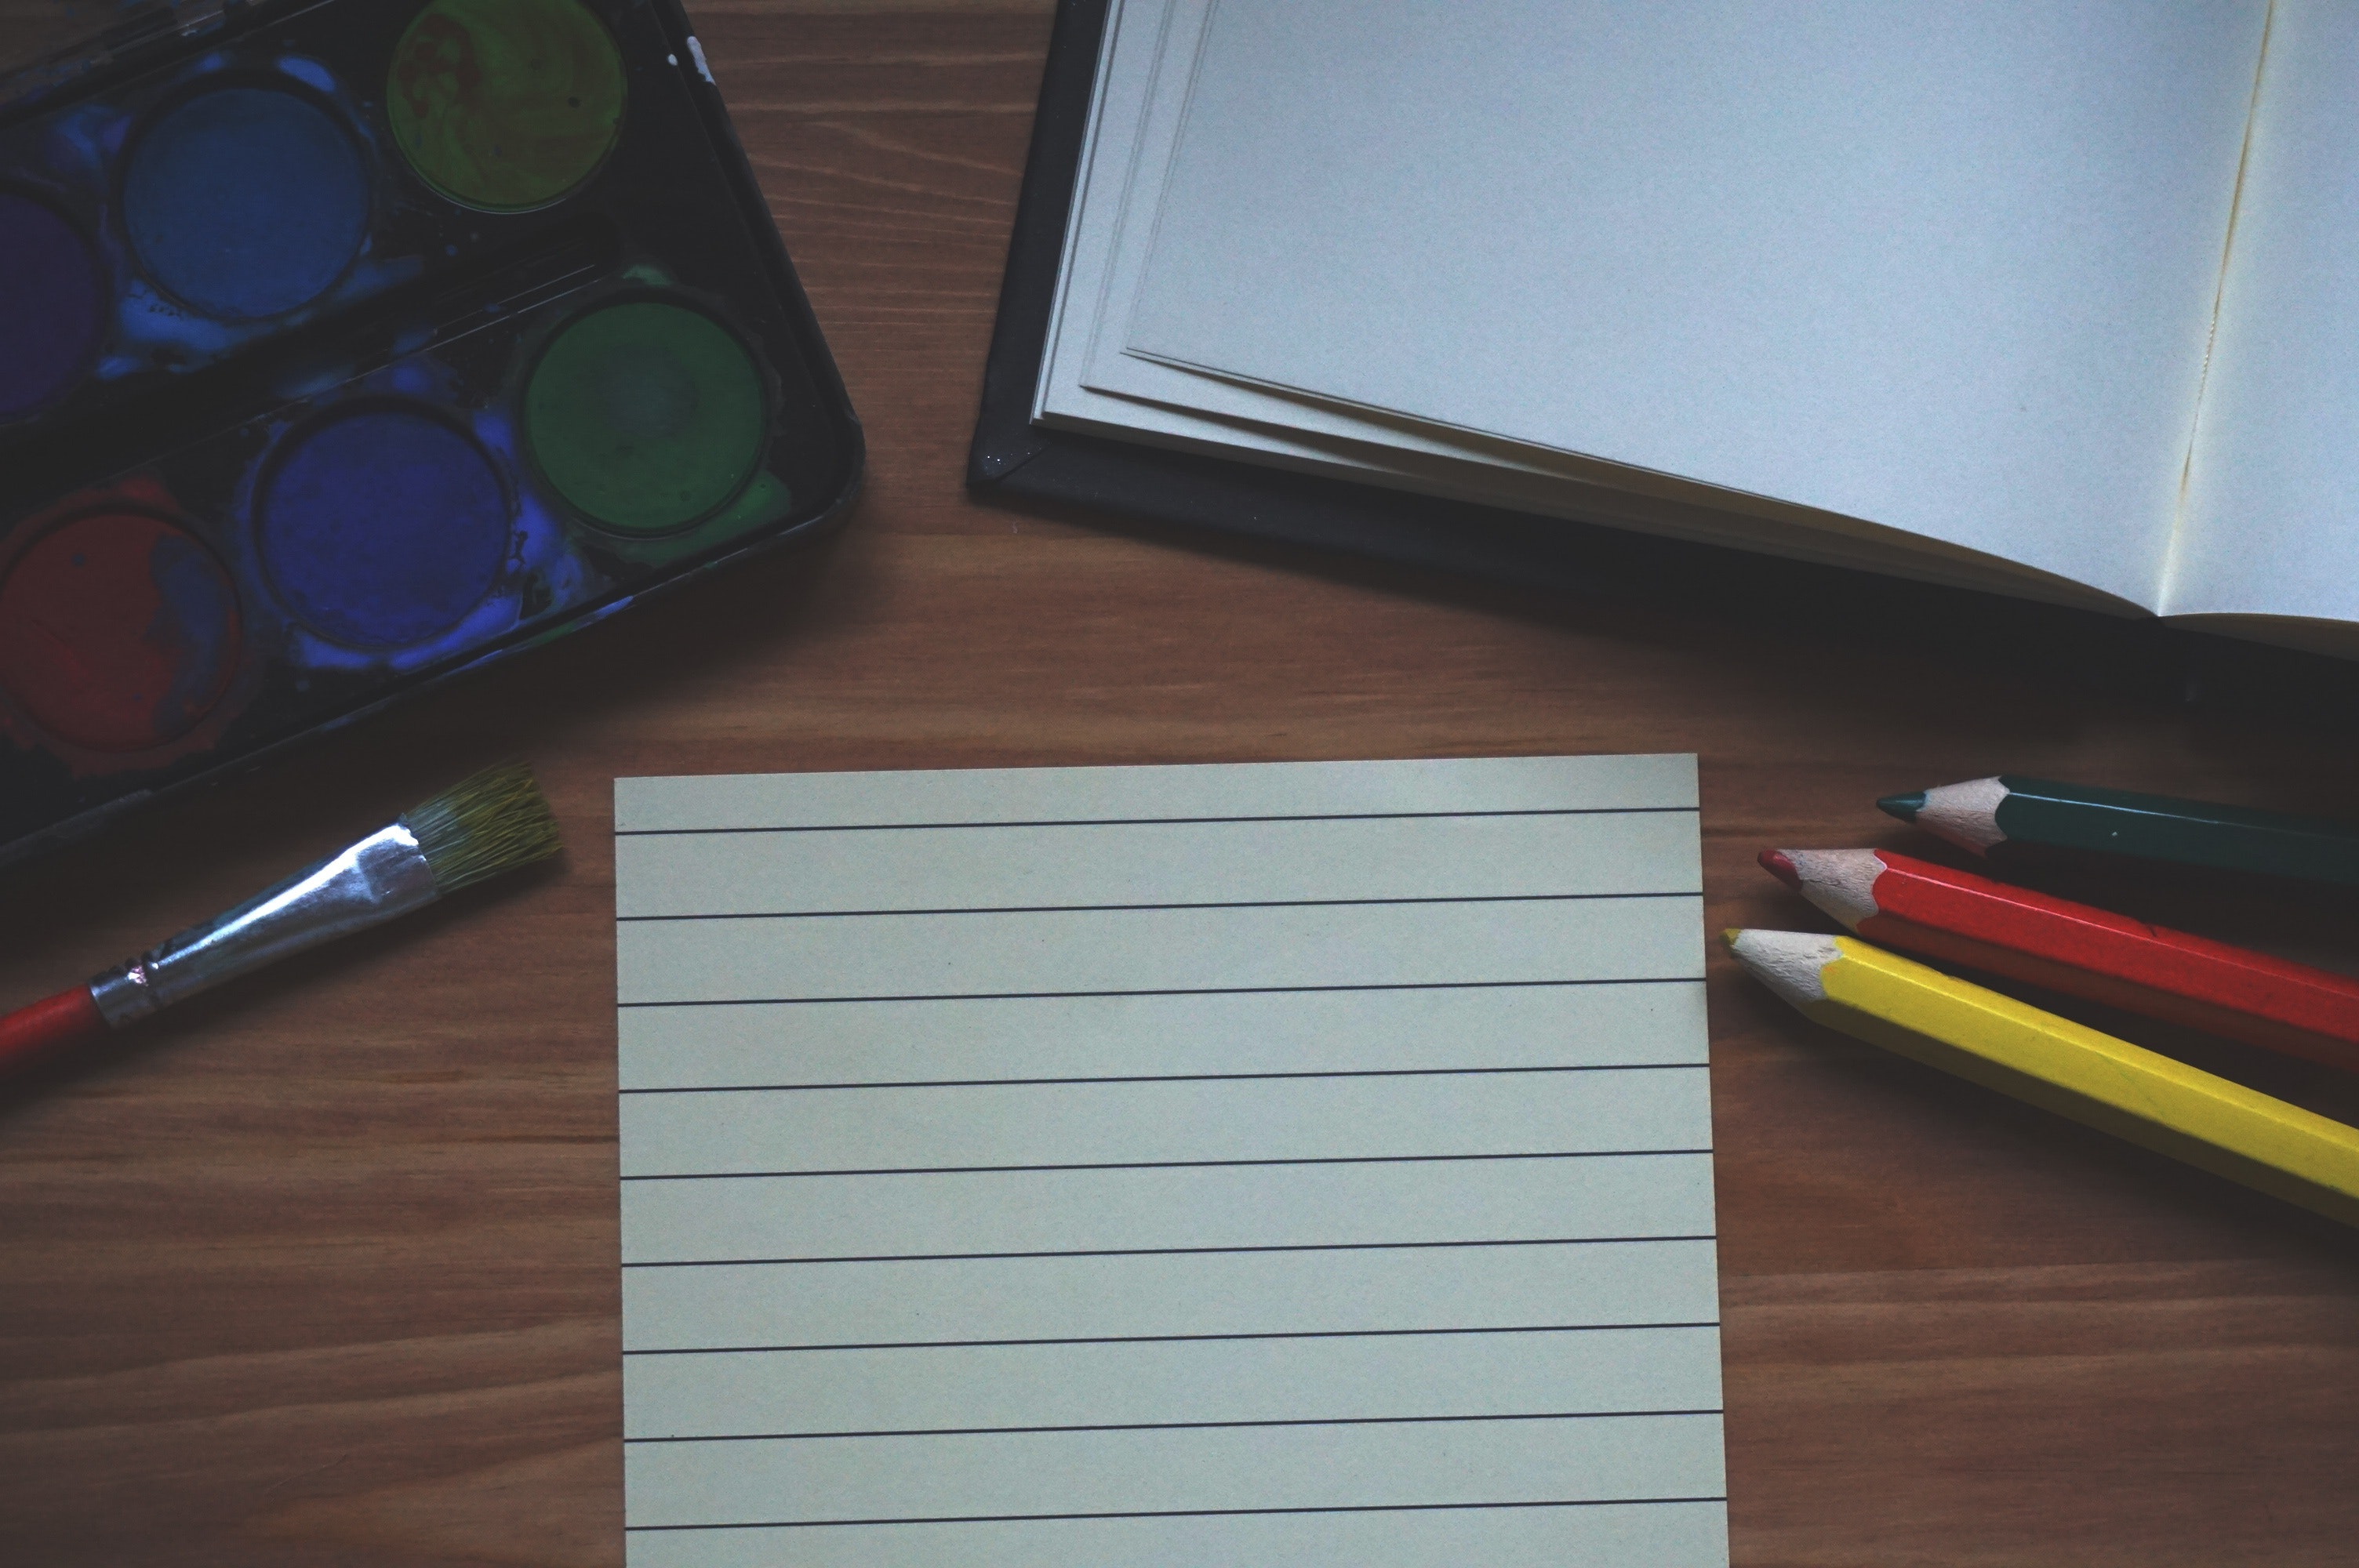 White Ruled Paper Beside Yellow Colored Pencil, Colored pencils, Coloured pencils, Desk, Notebook, HQ Photo